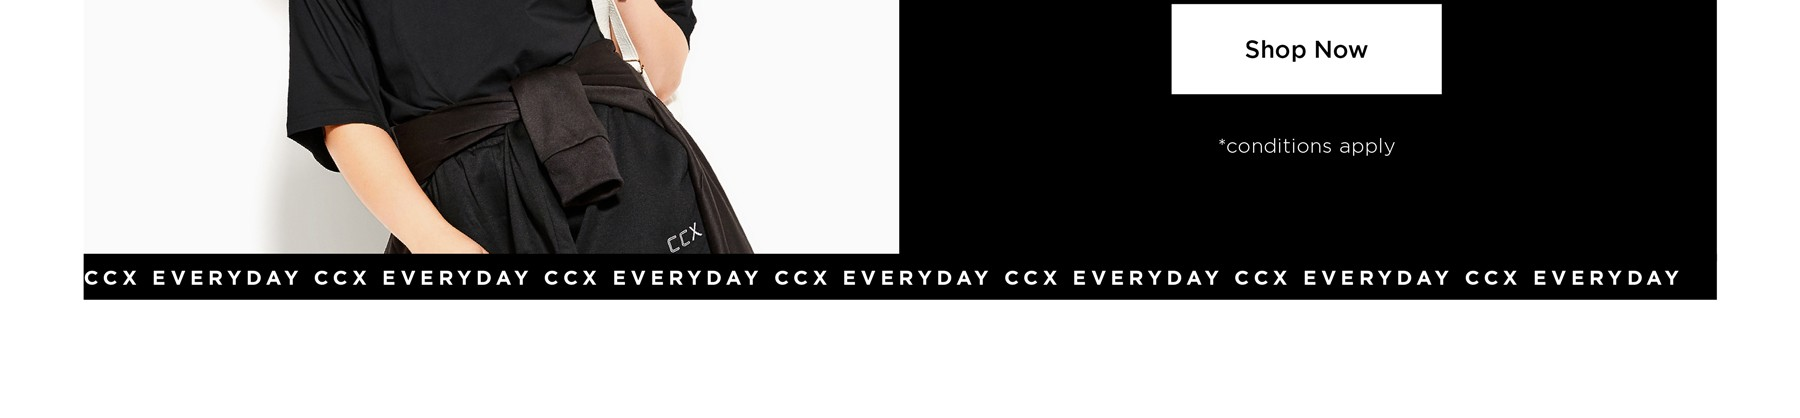 50% Off Everyday Style. Shop Now. Conditions Apply.